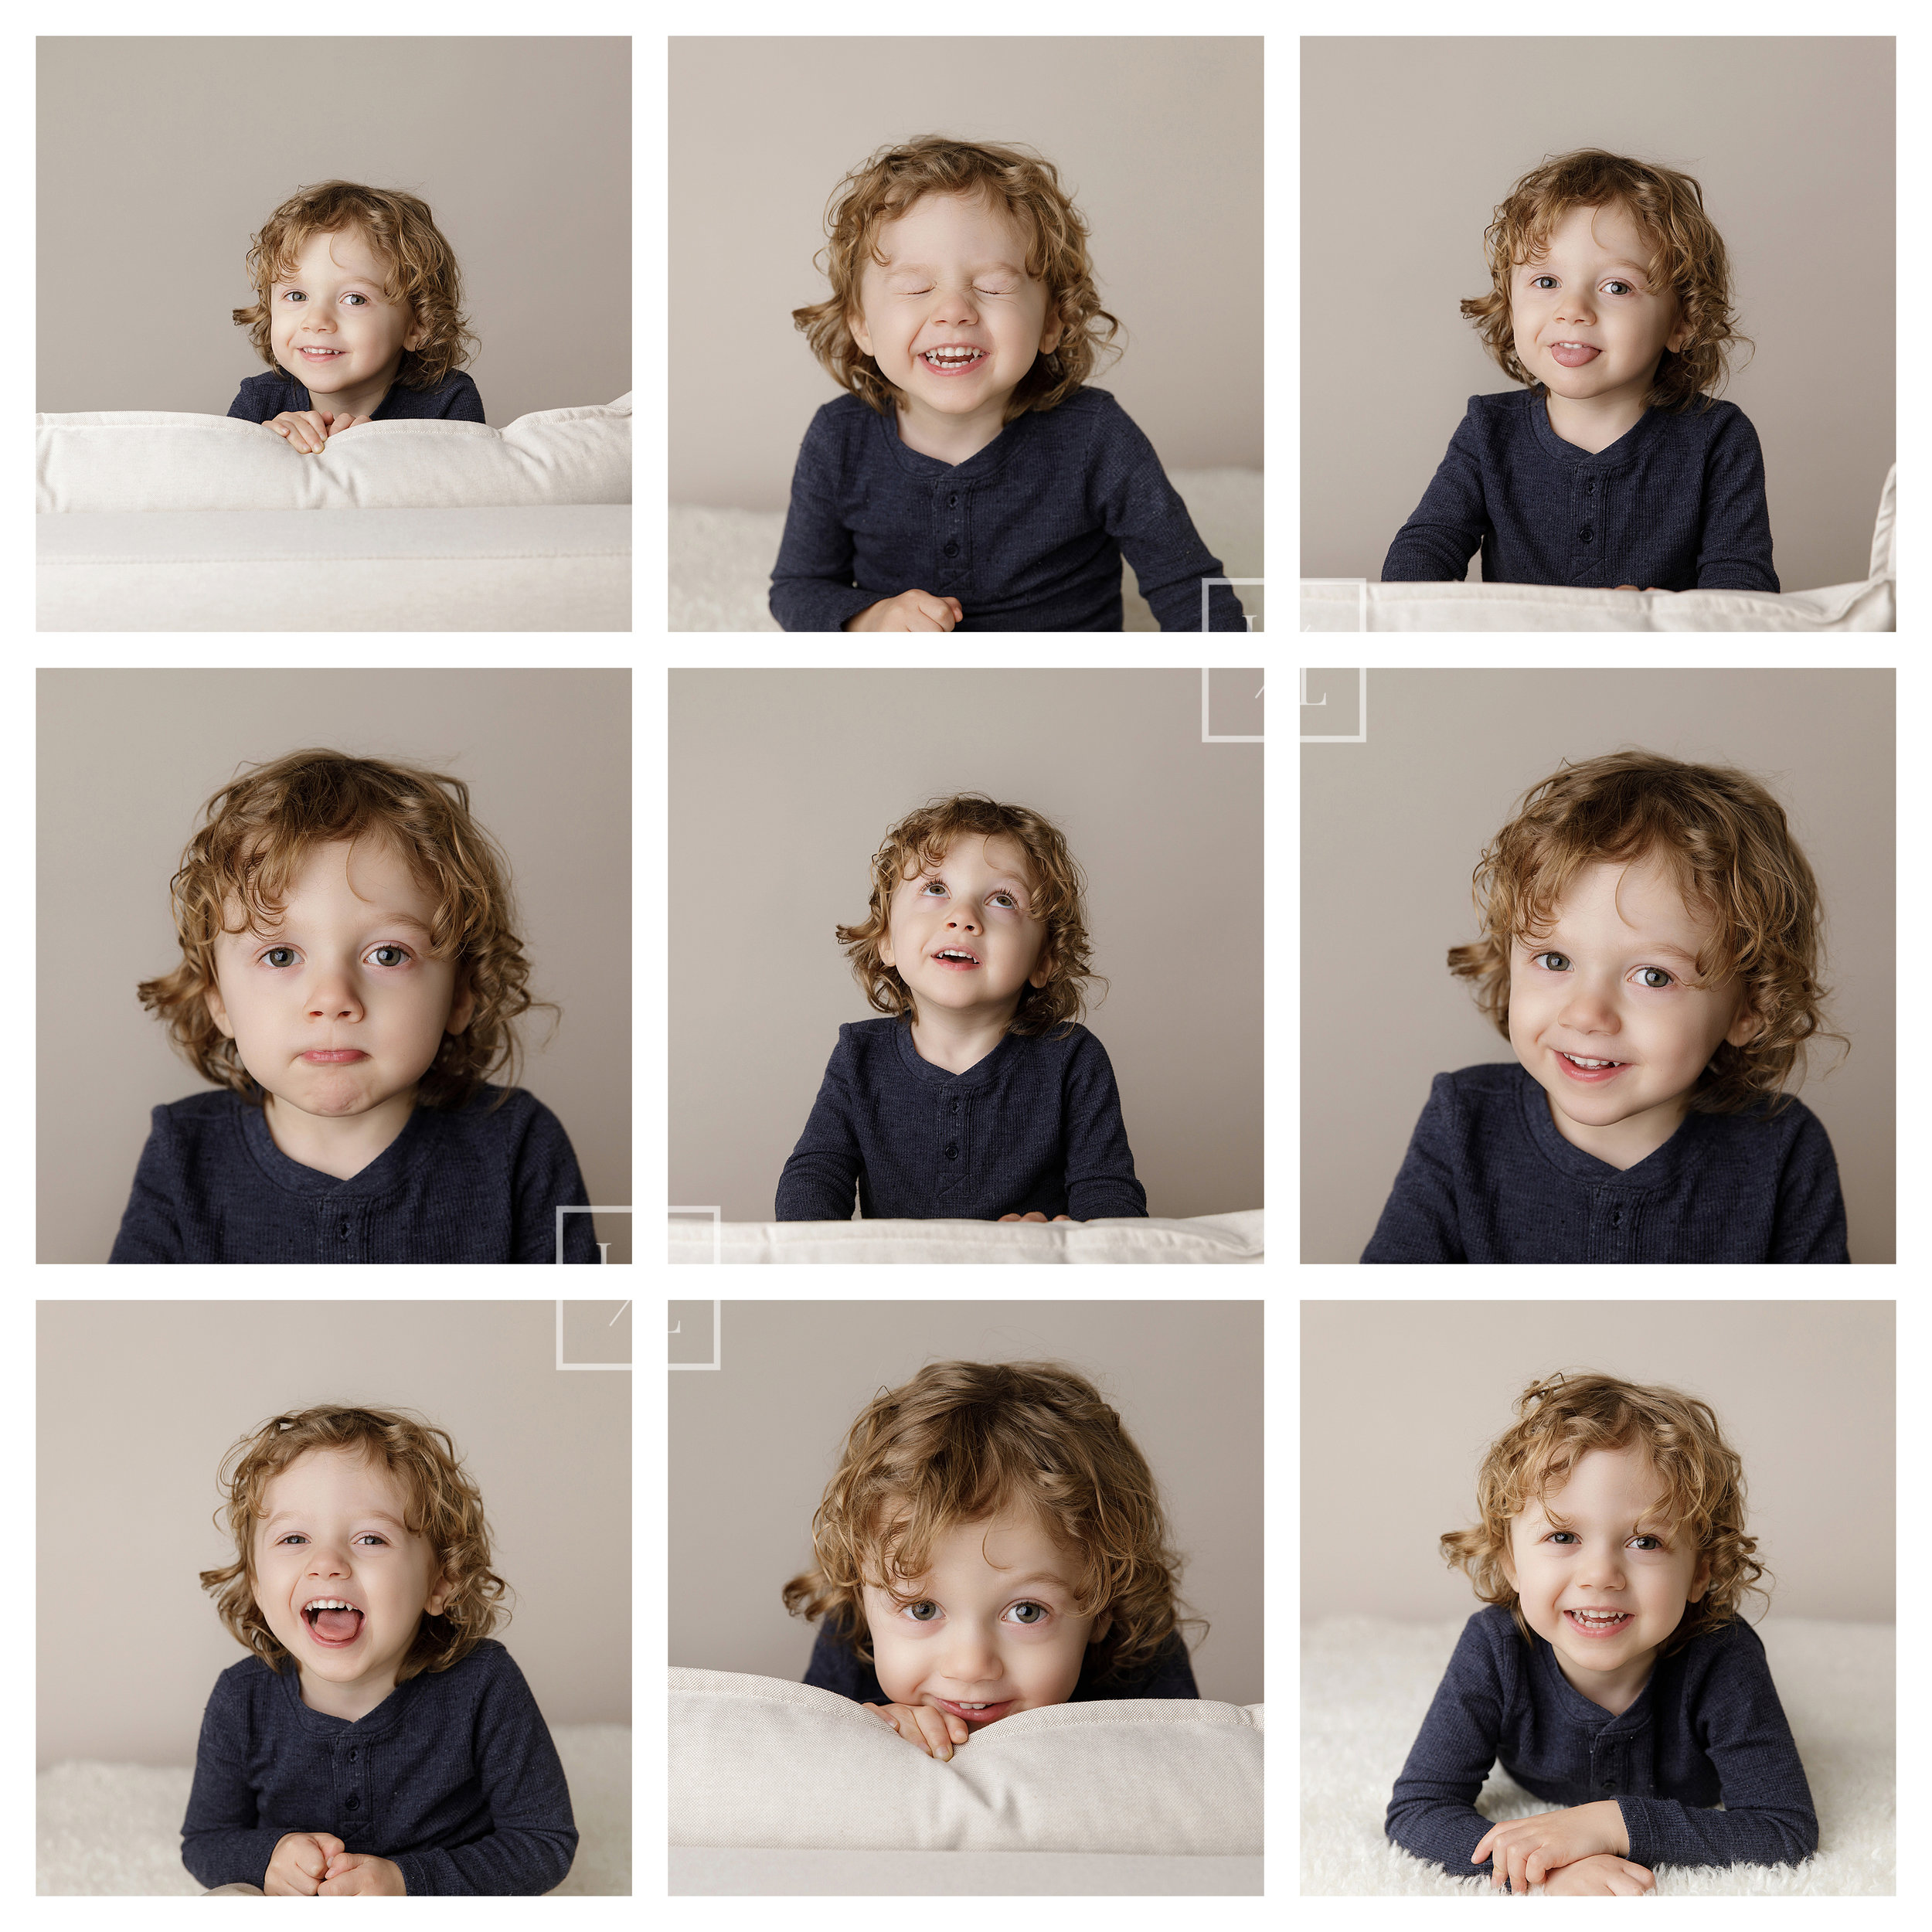 Collage of toddler expression pictures